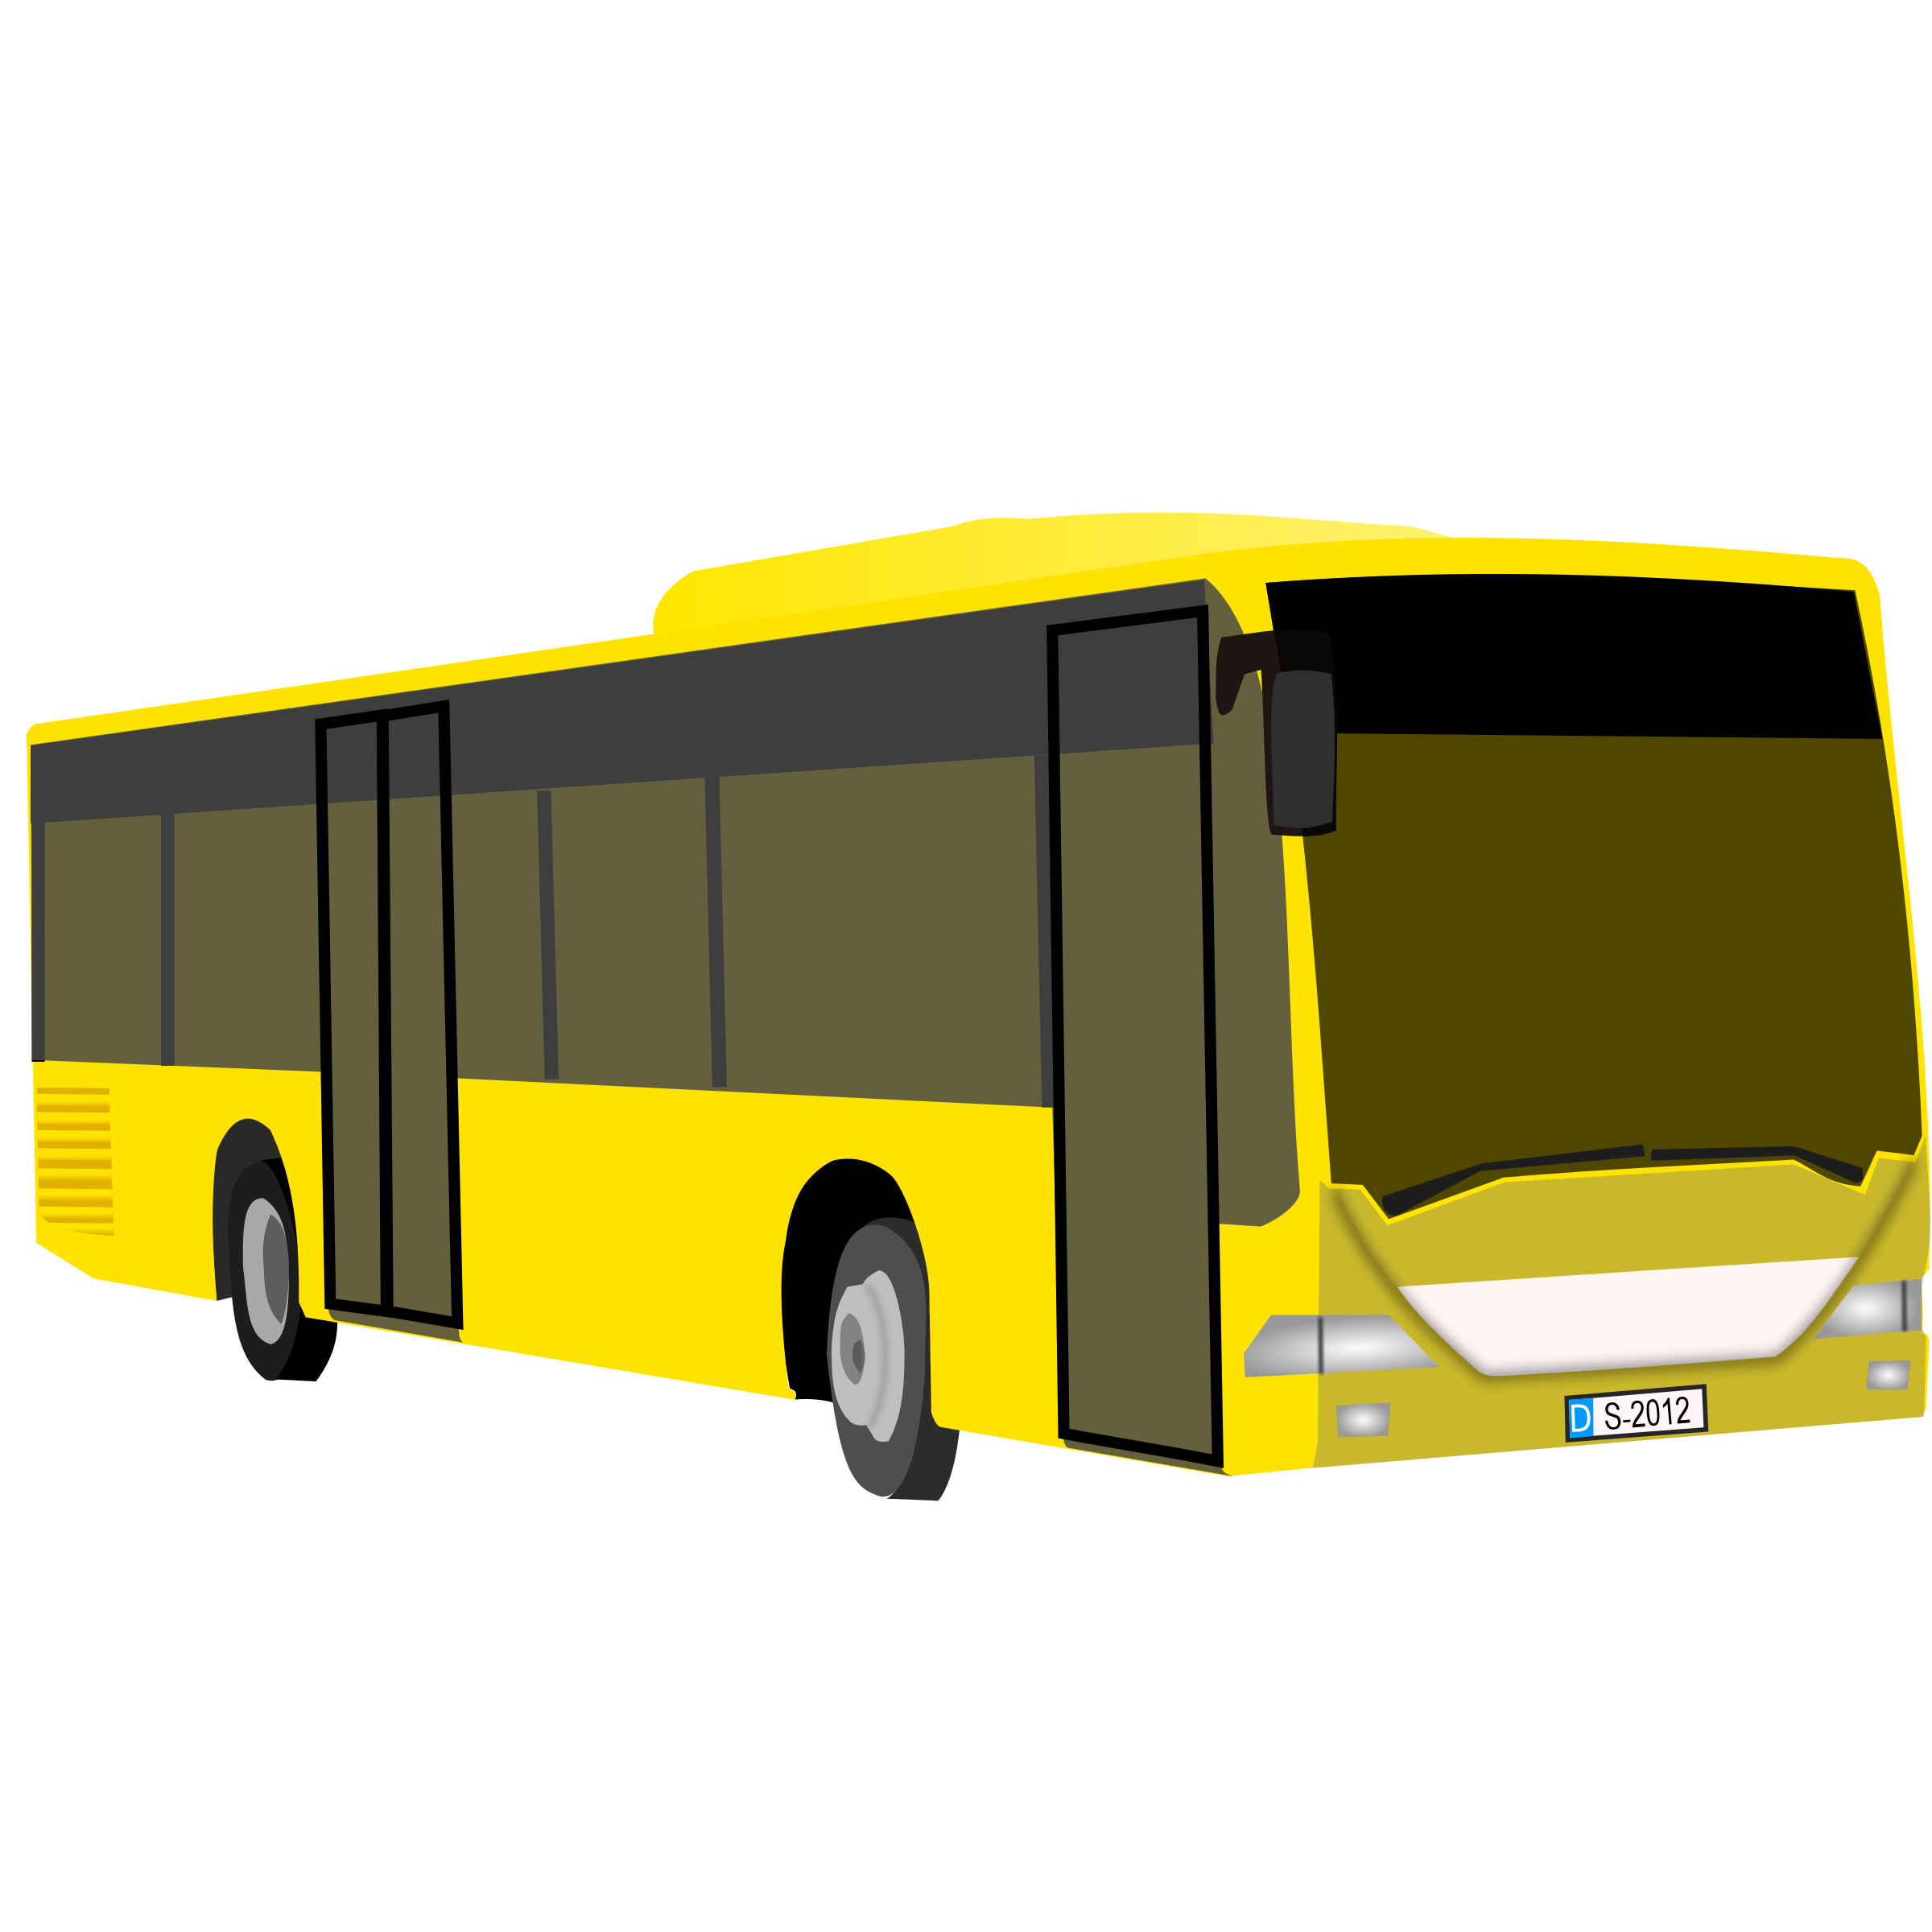 yellow bus by frankes